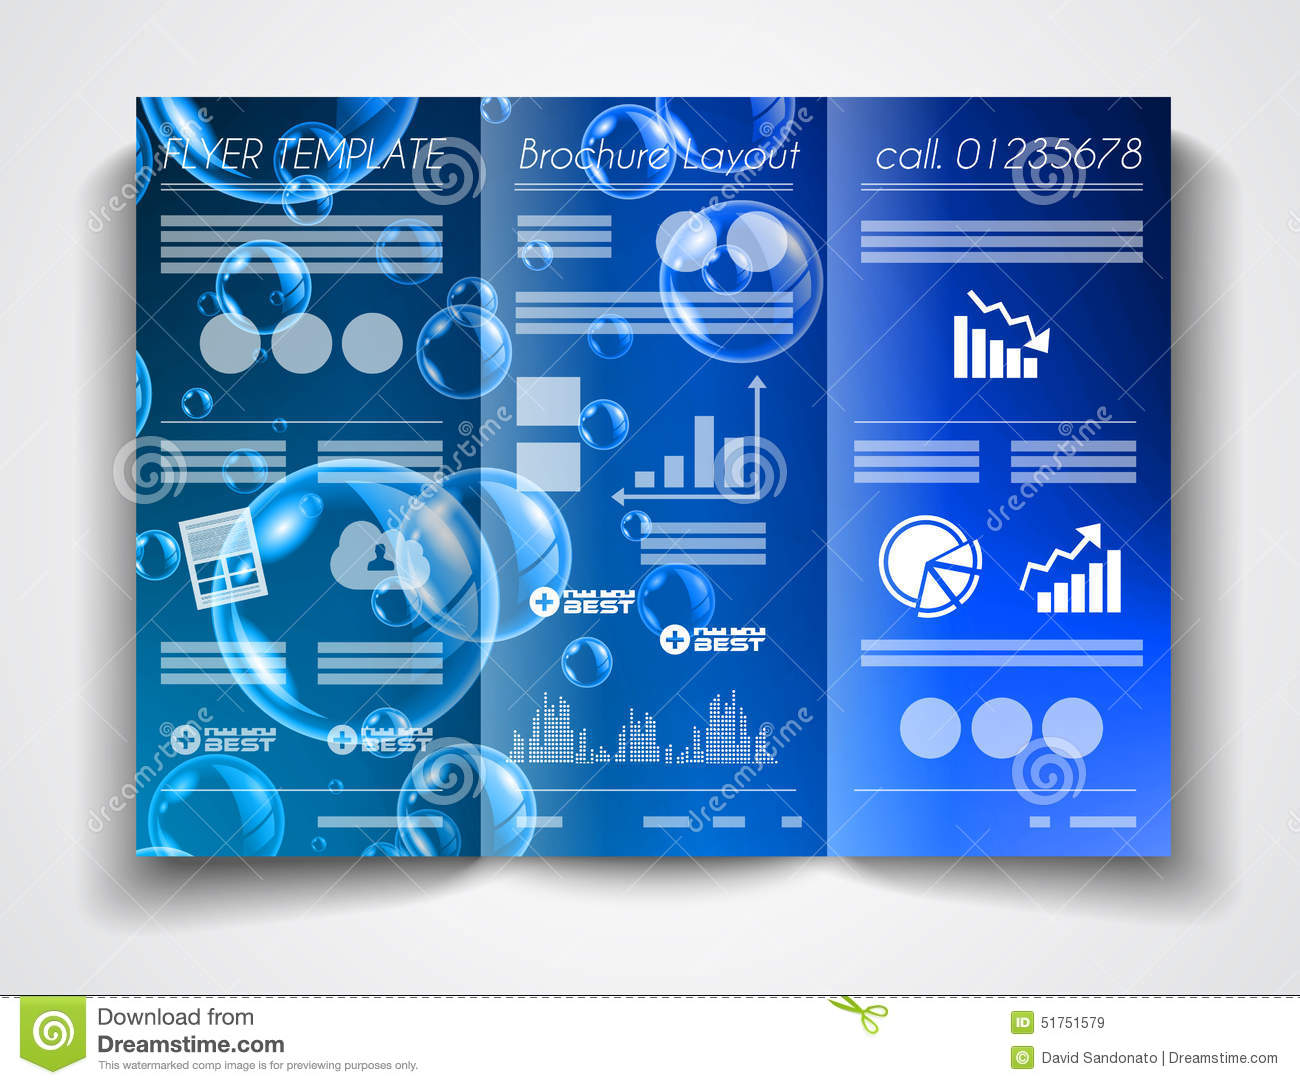 Product Tri Fold Brochure: Vector Tri Fold Brochure Template Design Or Flyer Layout